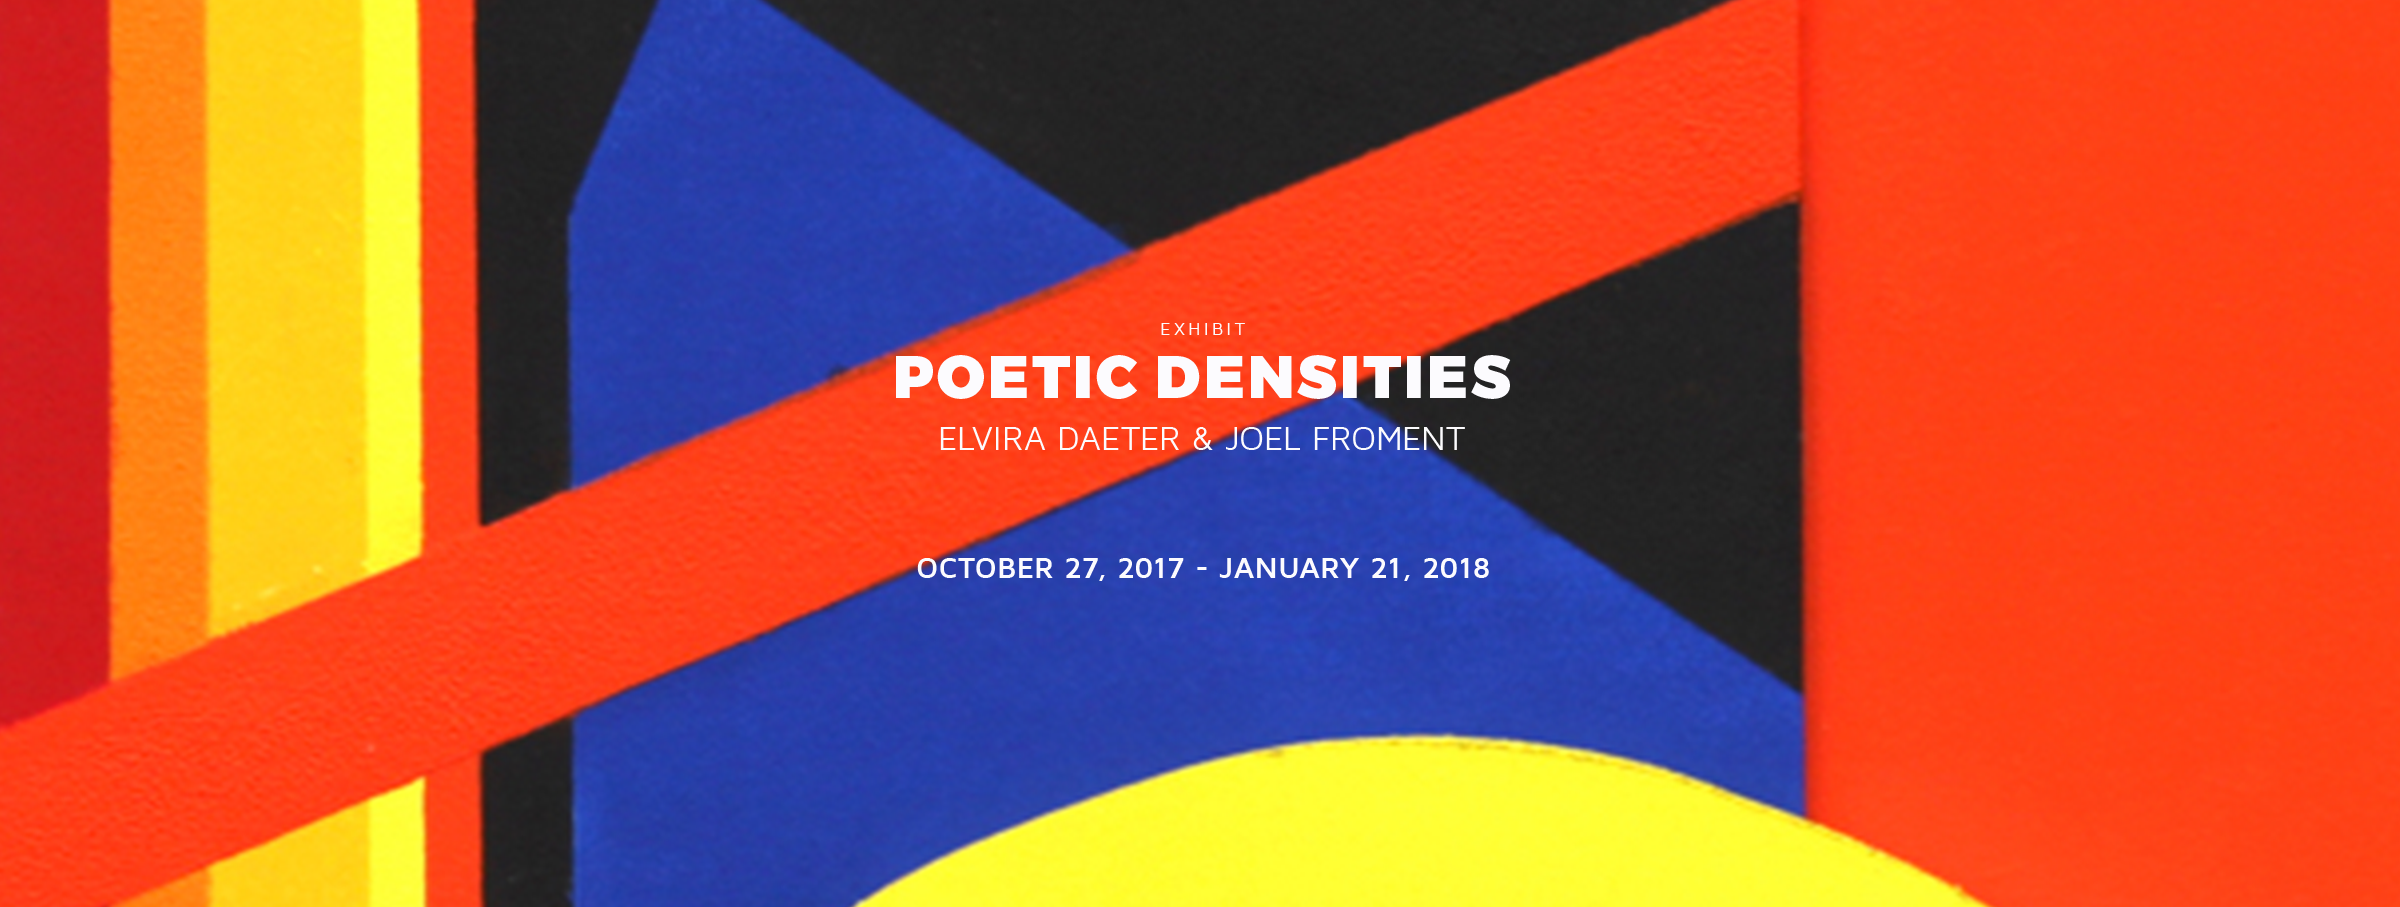 Geometric Art Exhibits in Dallas: Daeter and Froment at the Museum of Geometric and MADI Art